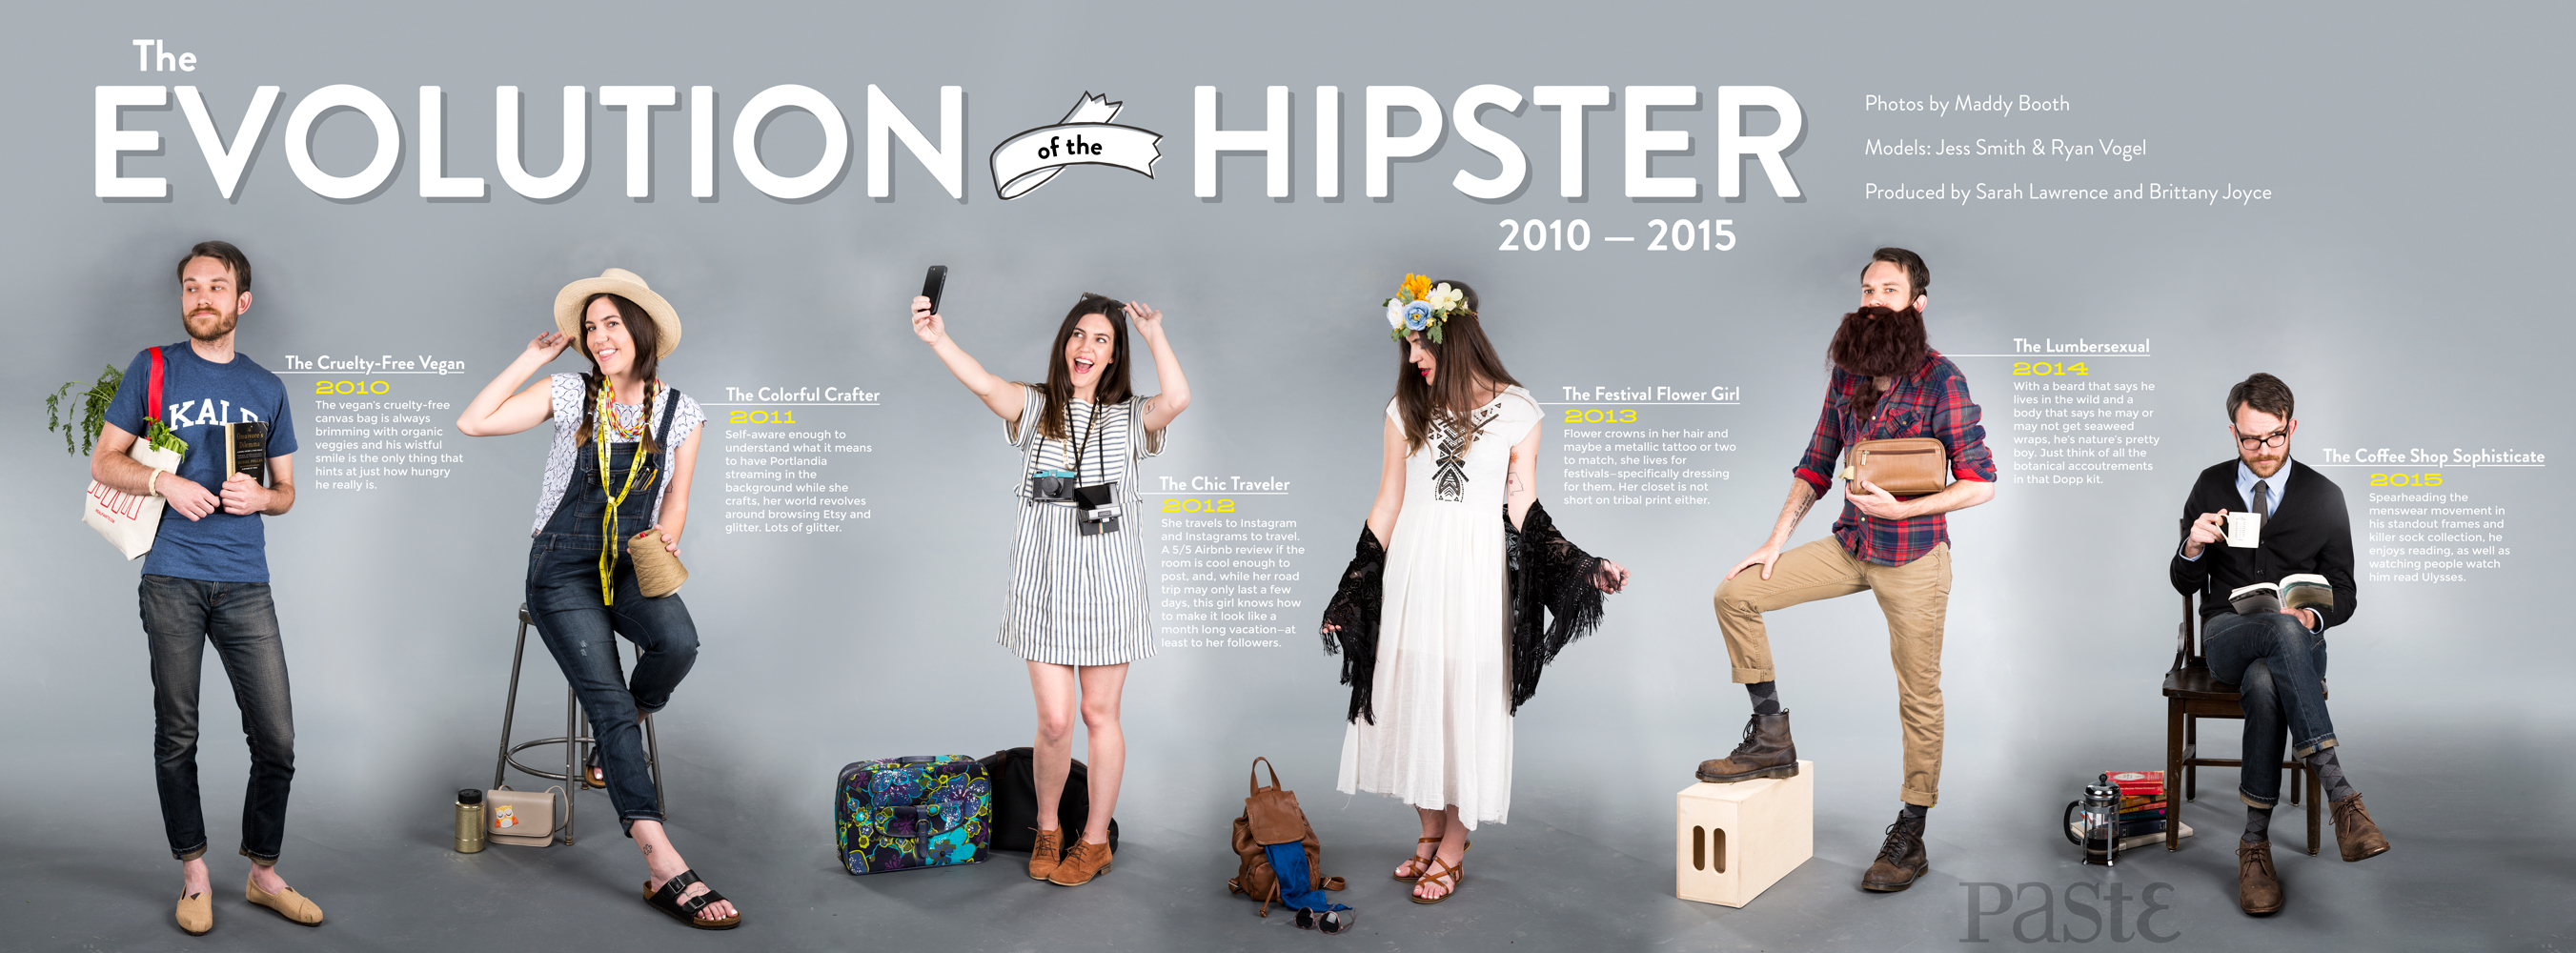 The Evolution Of The Hipster 2010—2015 Style Galleries